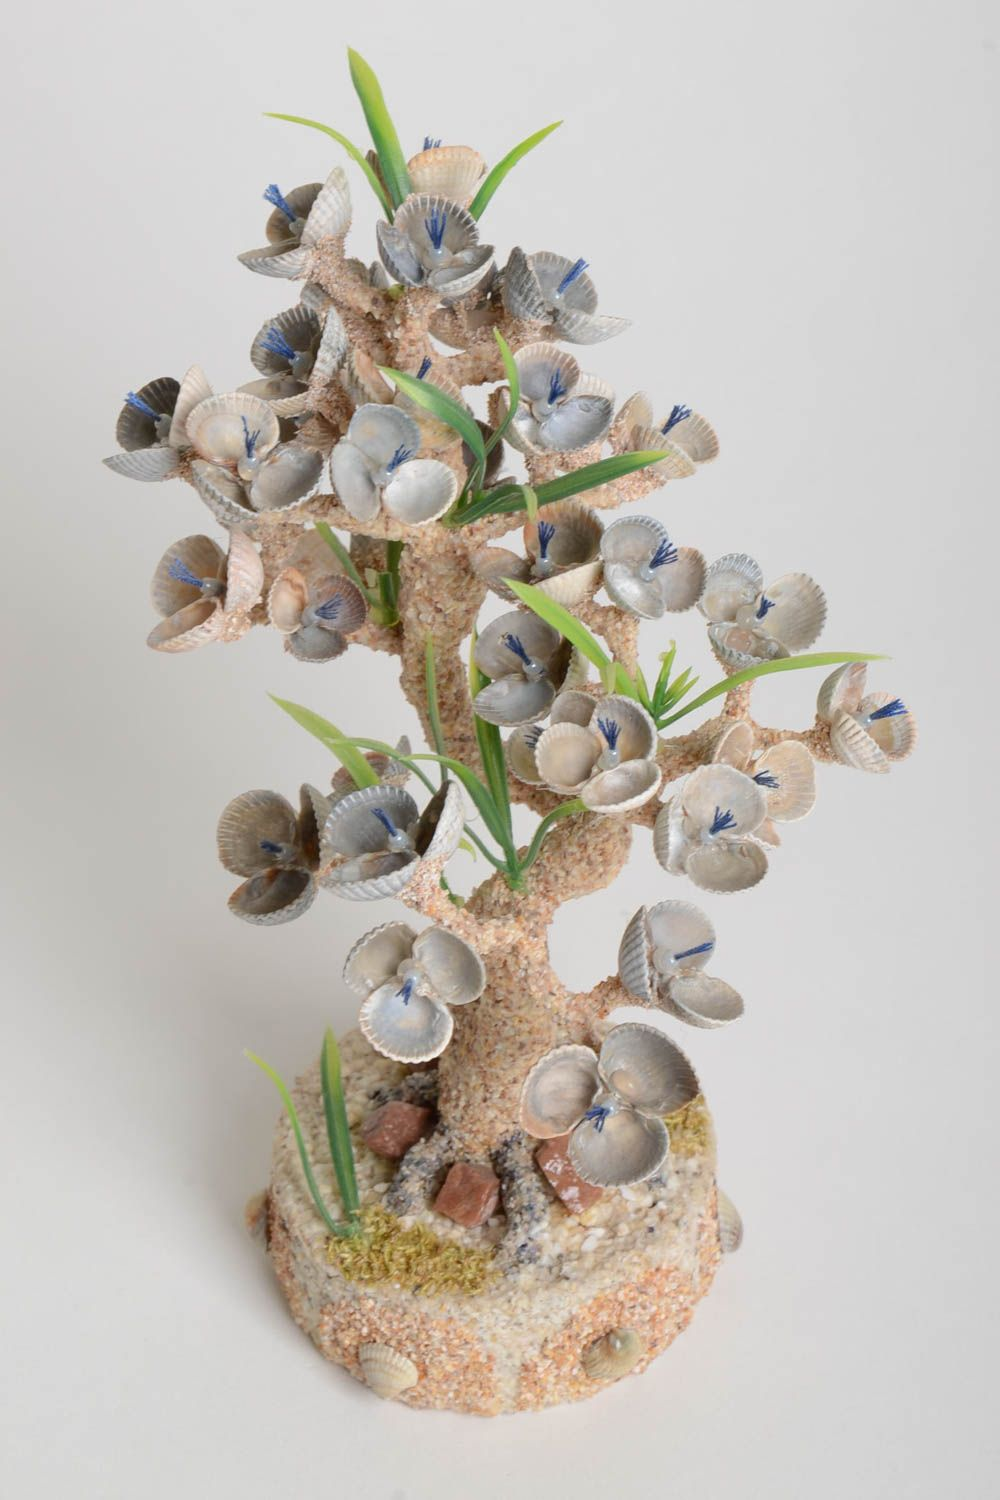 Handmade tree decoration tree composition with flowers table decor gift ideas photo 4